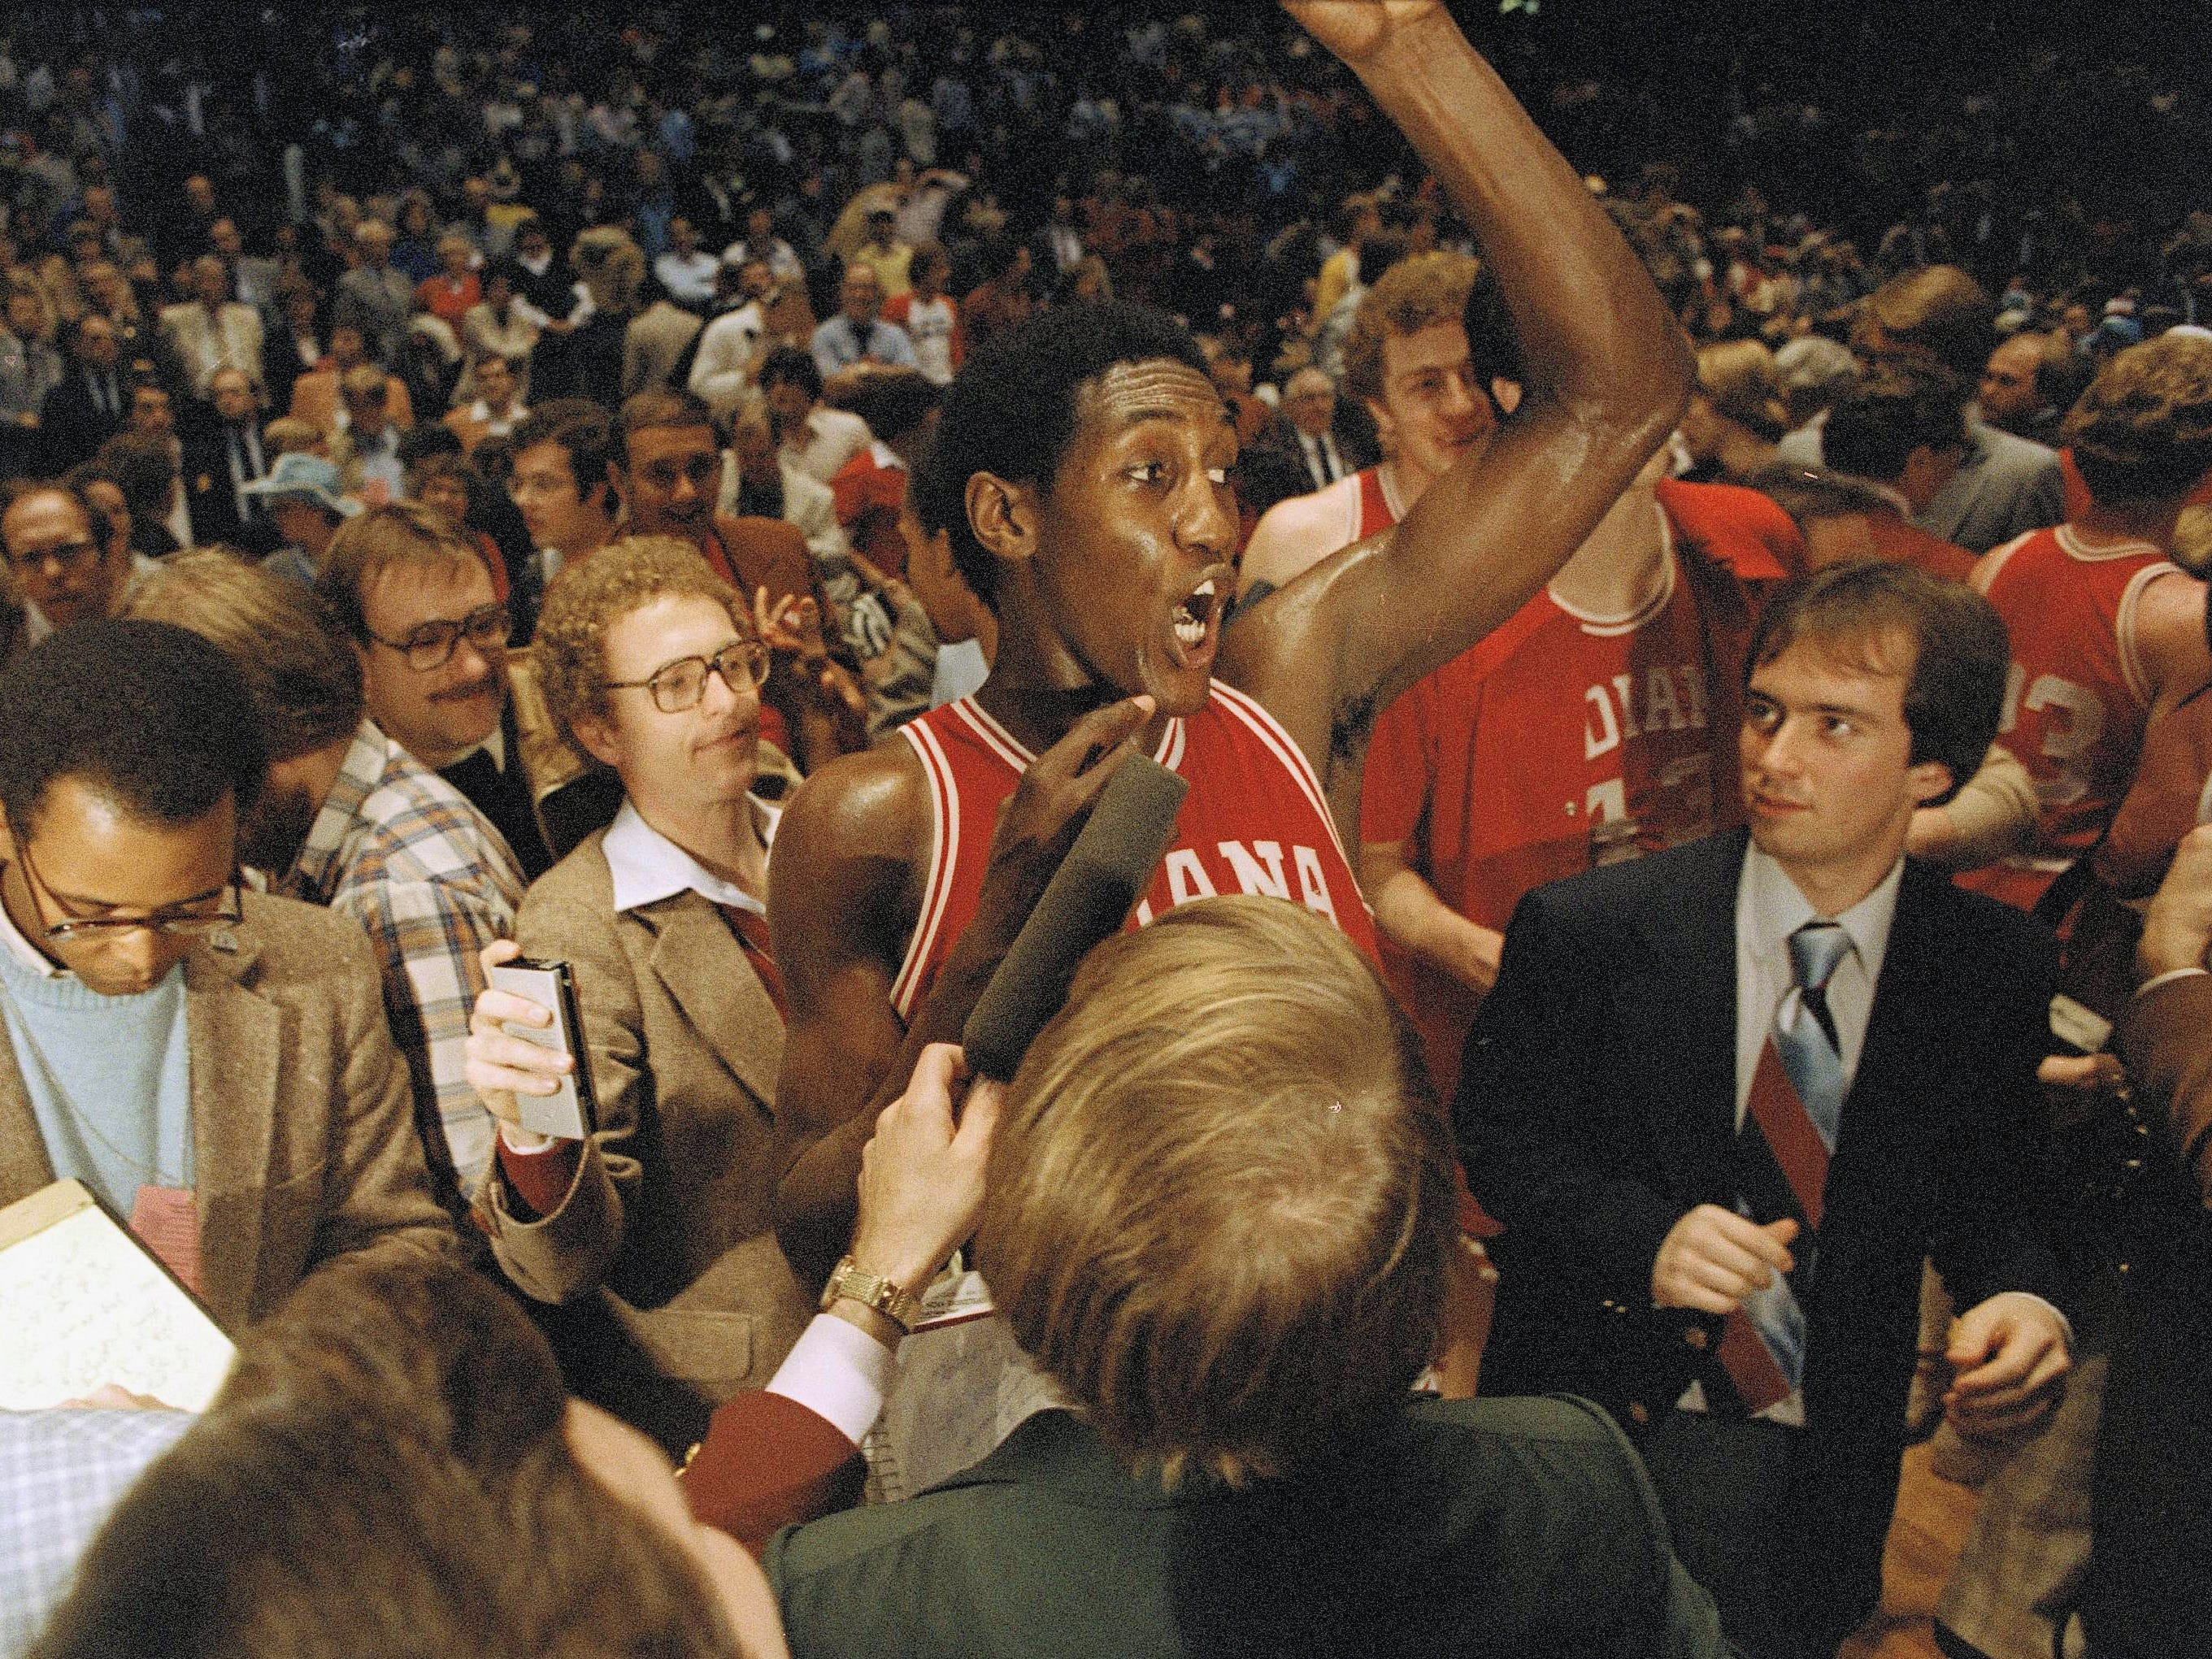 Isiah Thomas of Indiana University is surrounded by newsmen after his team won over North Carolina, 63-50, in the final NCAA championship game, March 31, 1981. Thomas was declared MVP of the game in Philadelphia.